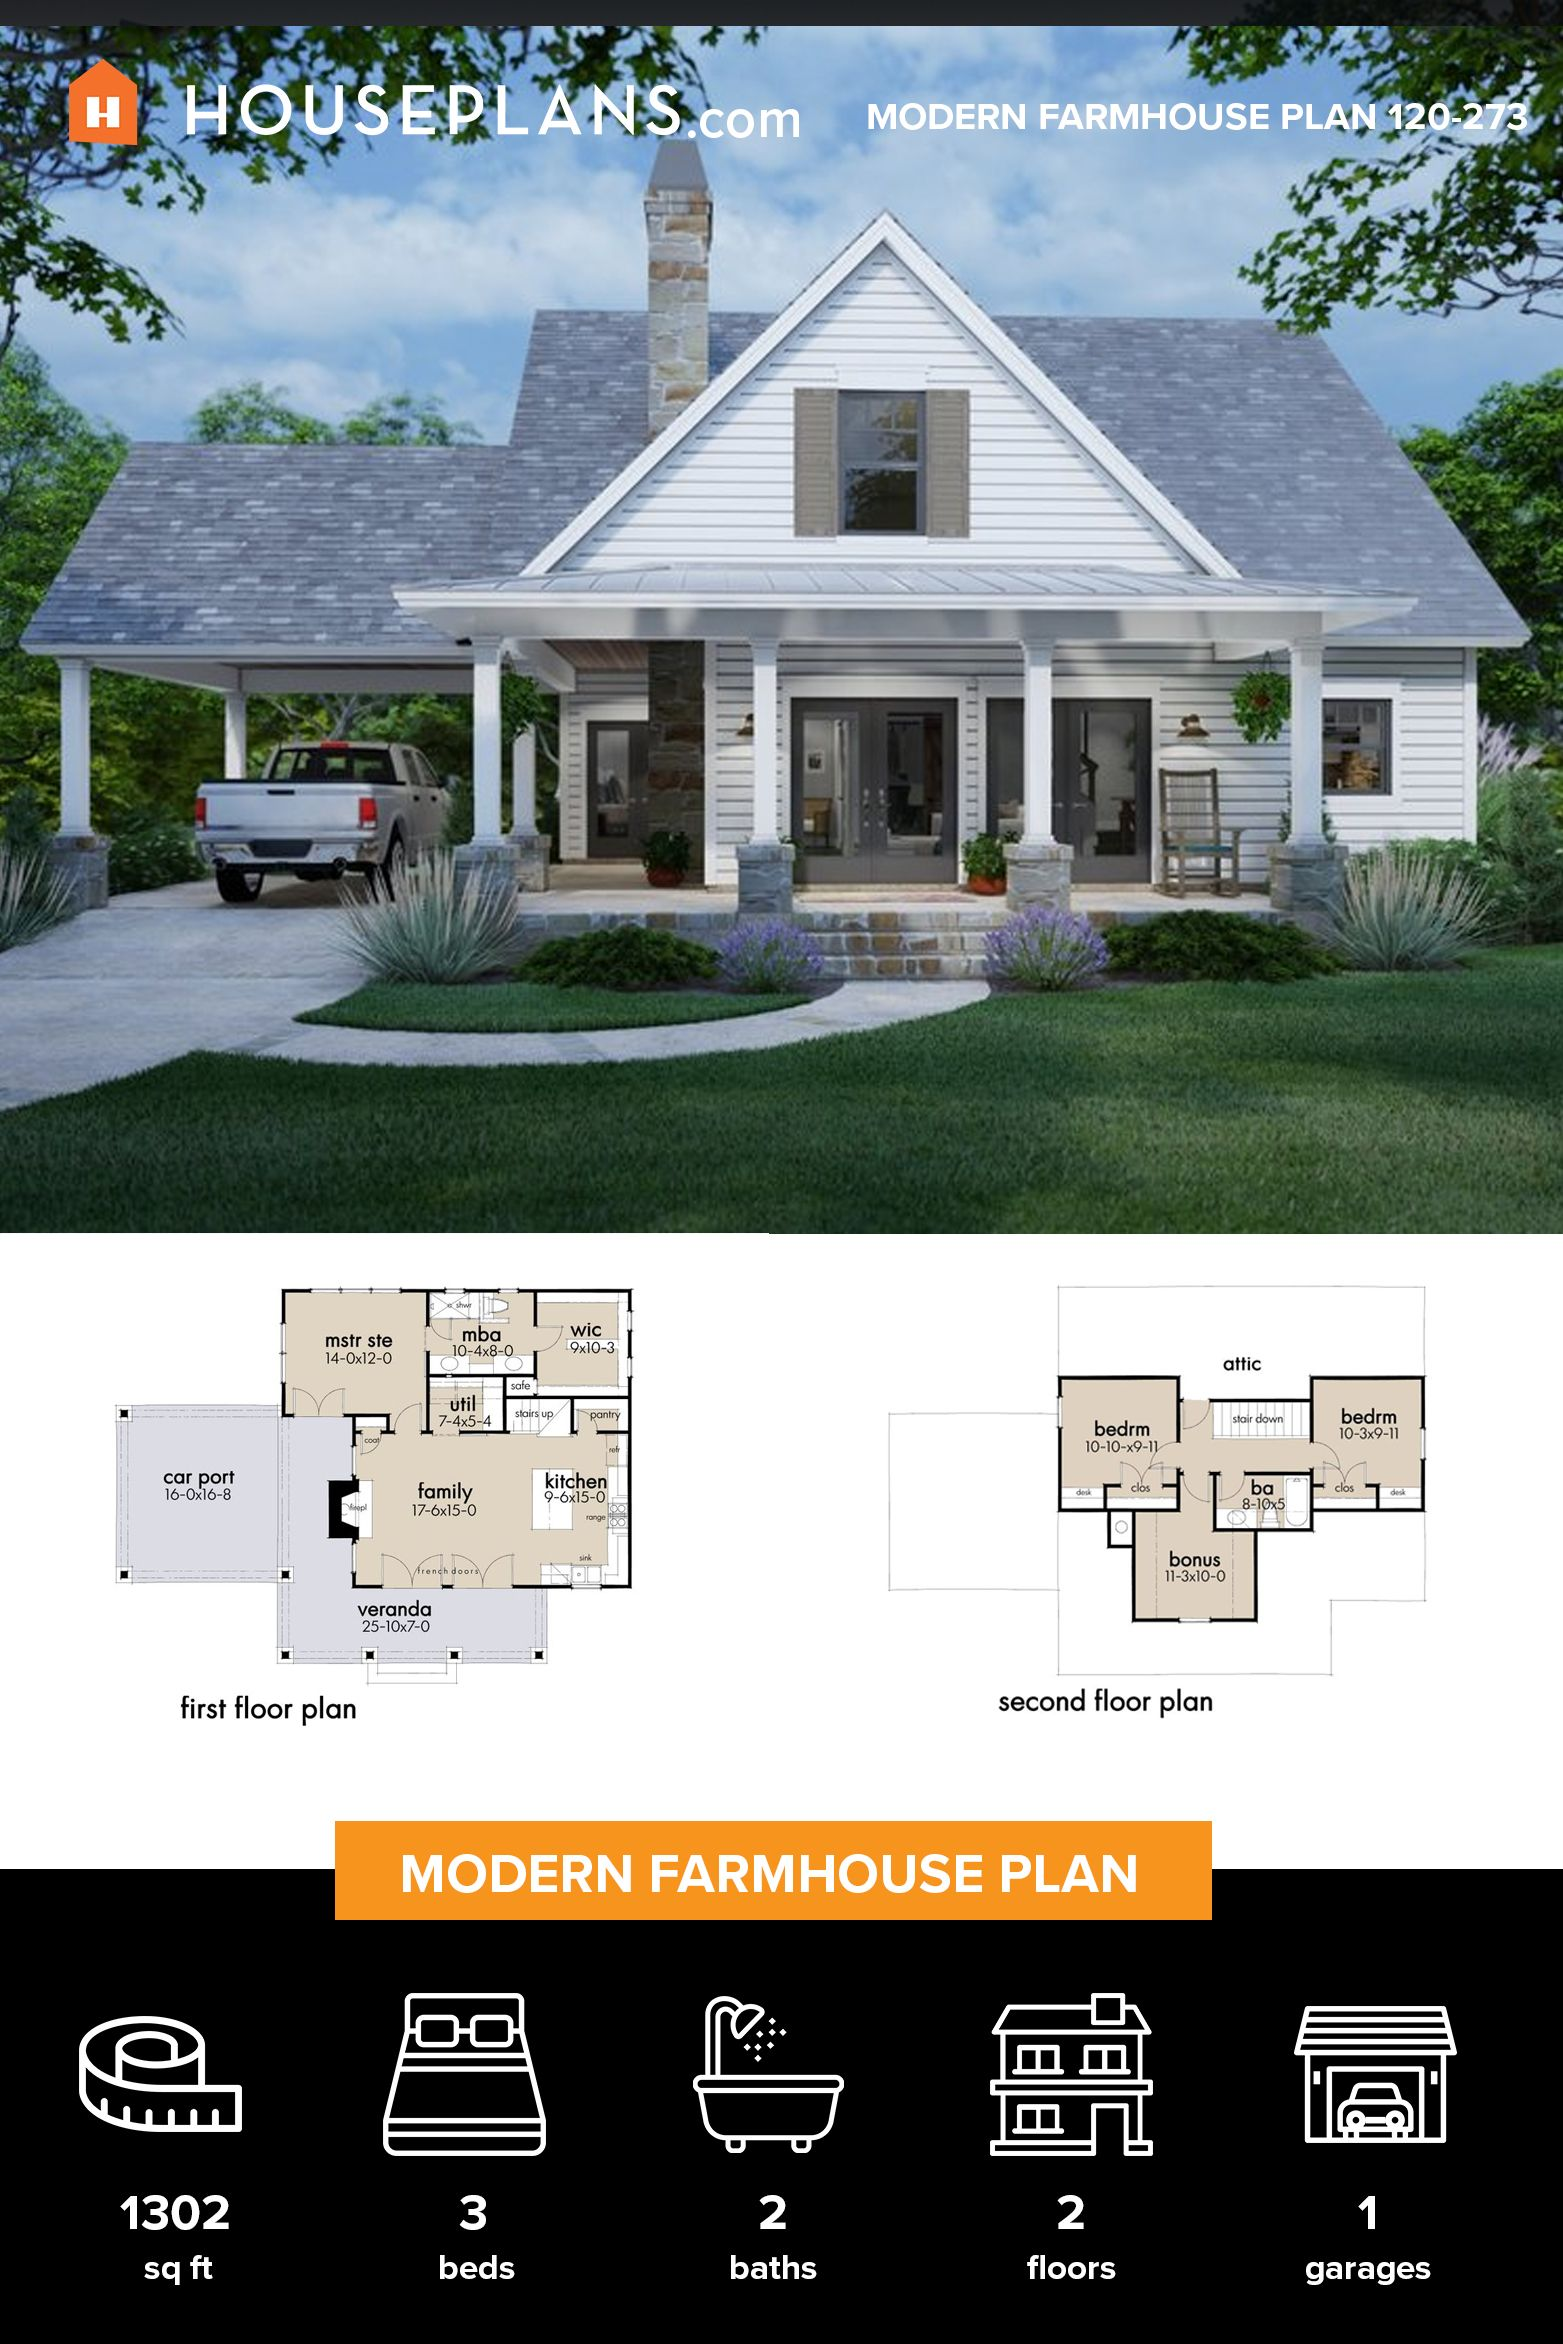 Cottage Style House Plan 3 Beds 2 Baths 1302 Sq Ft Plan 120 273 Modern Farmhouse Plans House Plans Farmhouse Farmhouse Plans